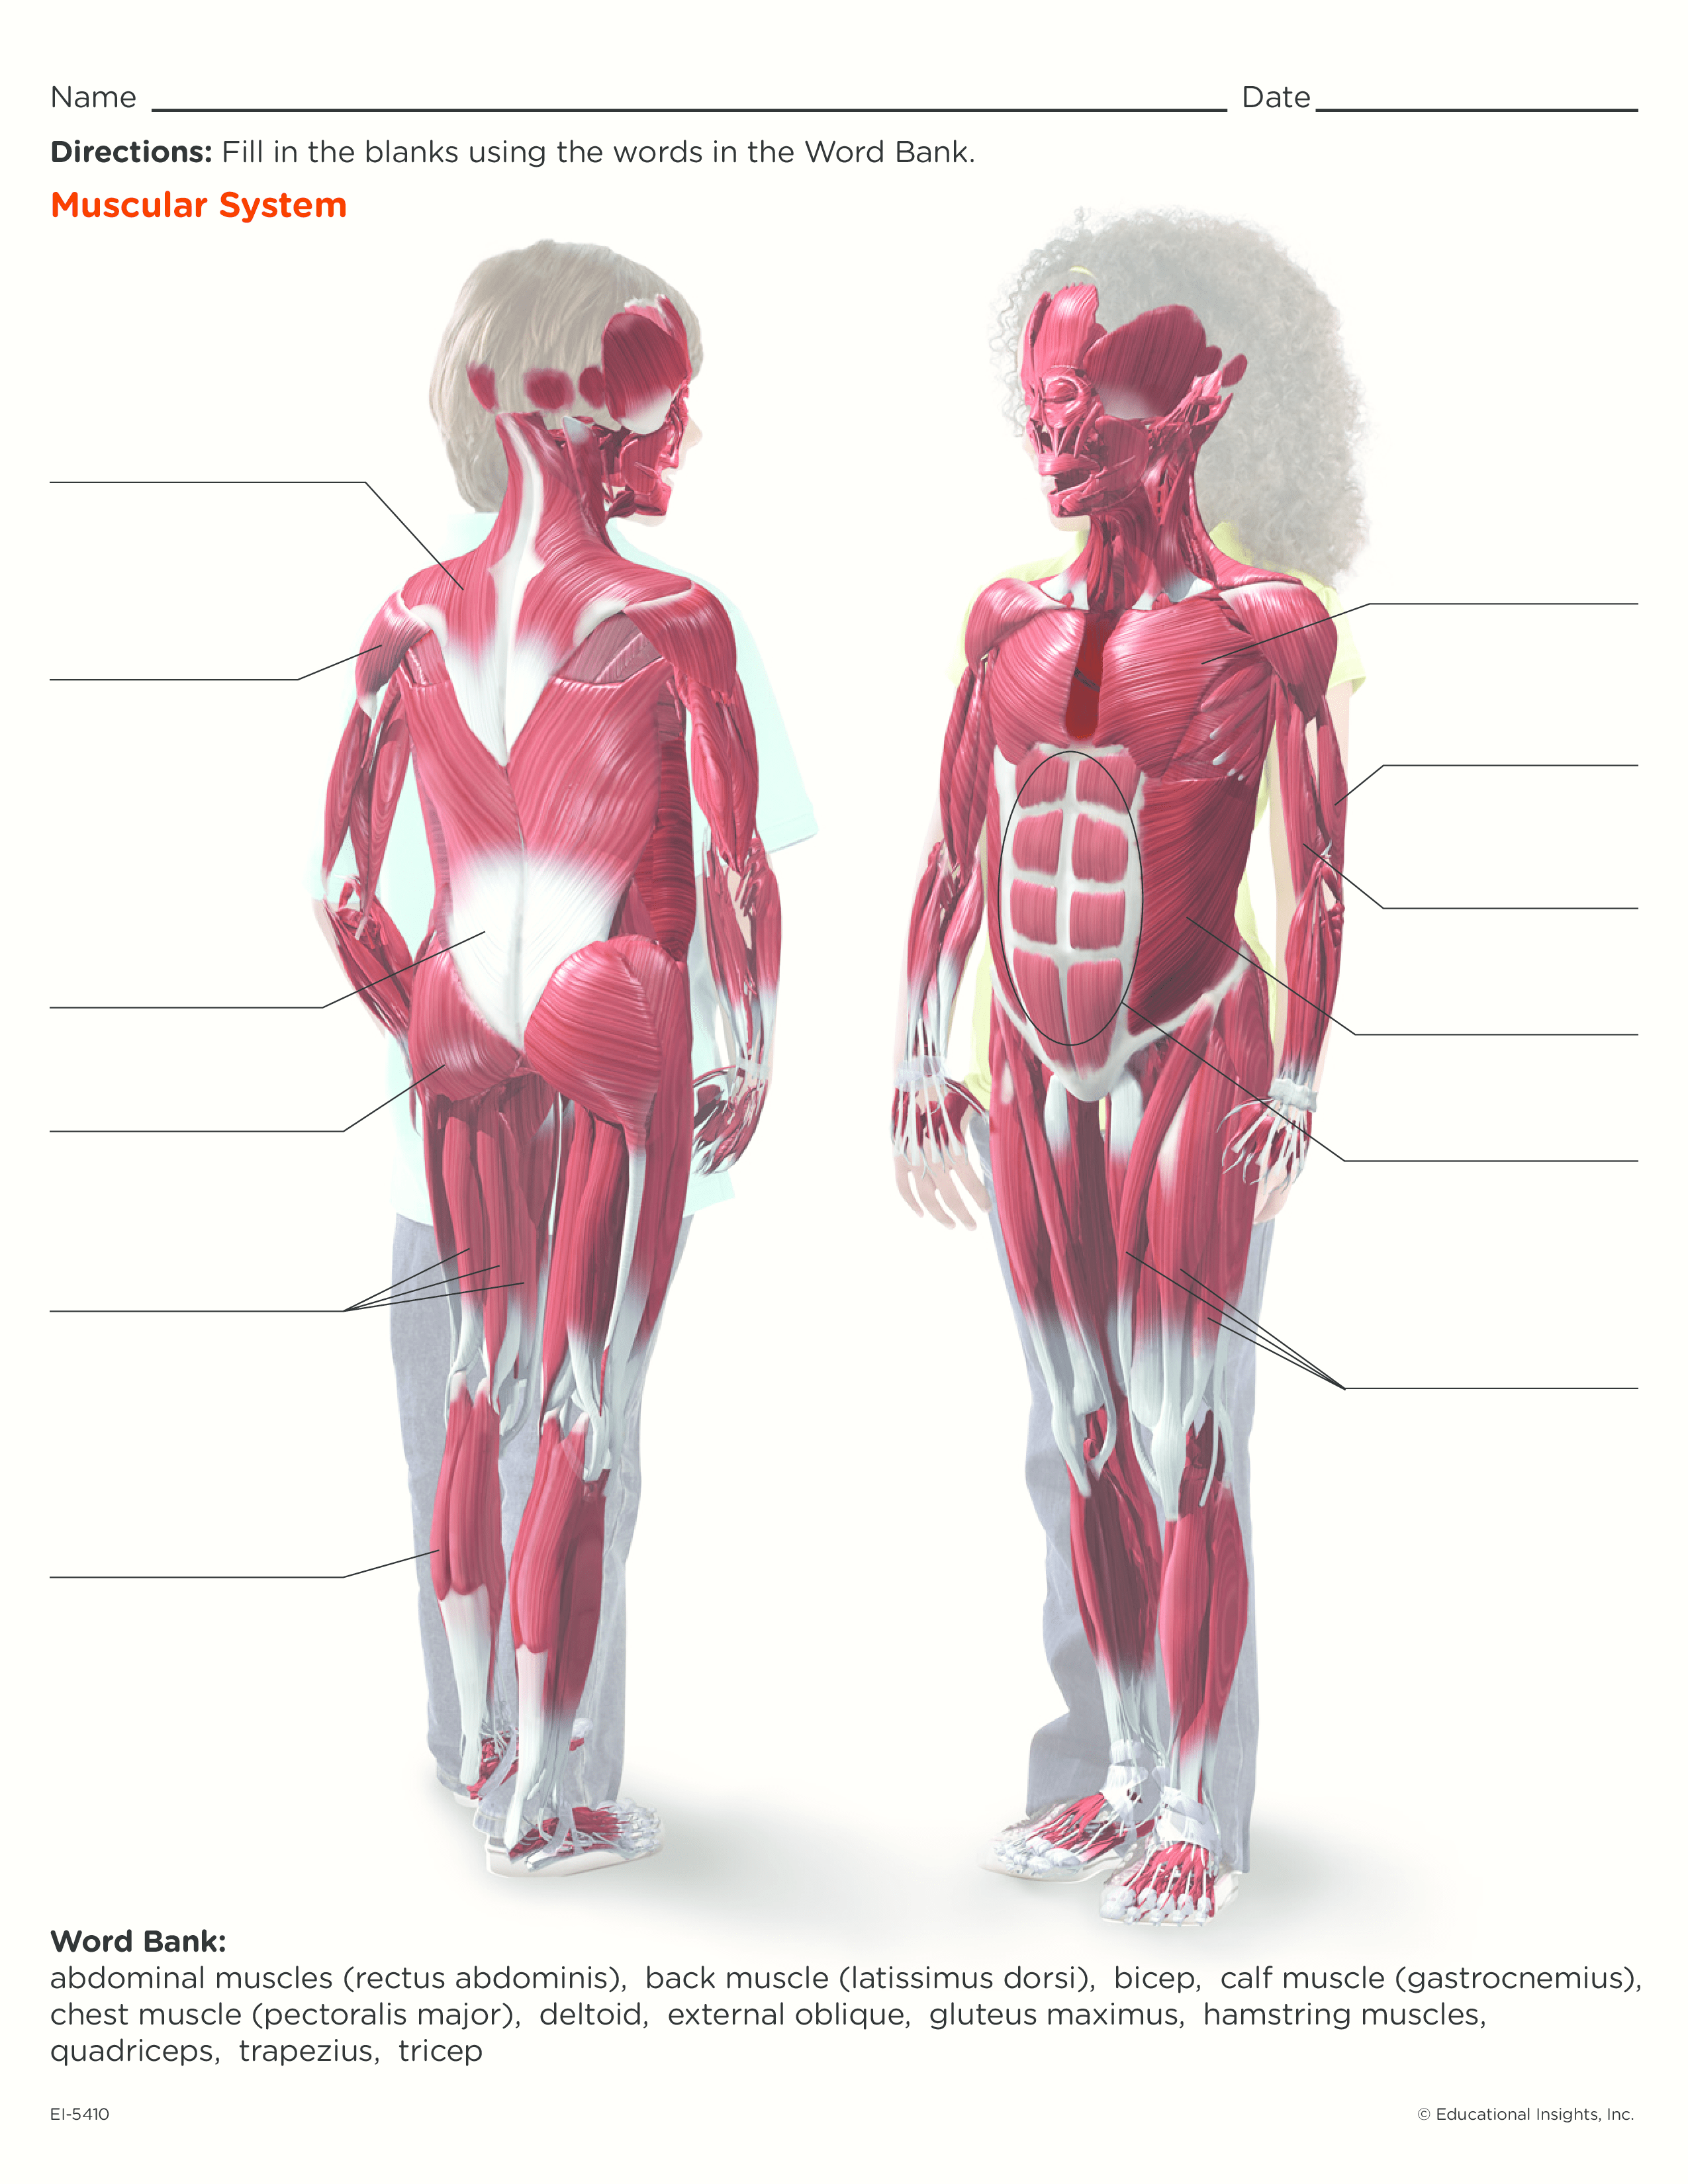 Cool Worksheet For Kids To Learn About The Muscular System